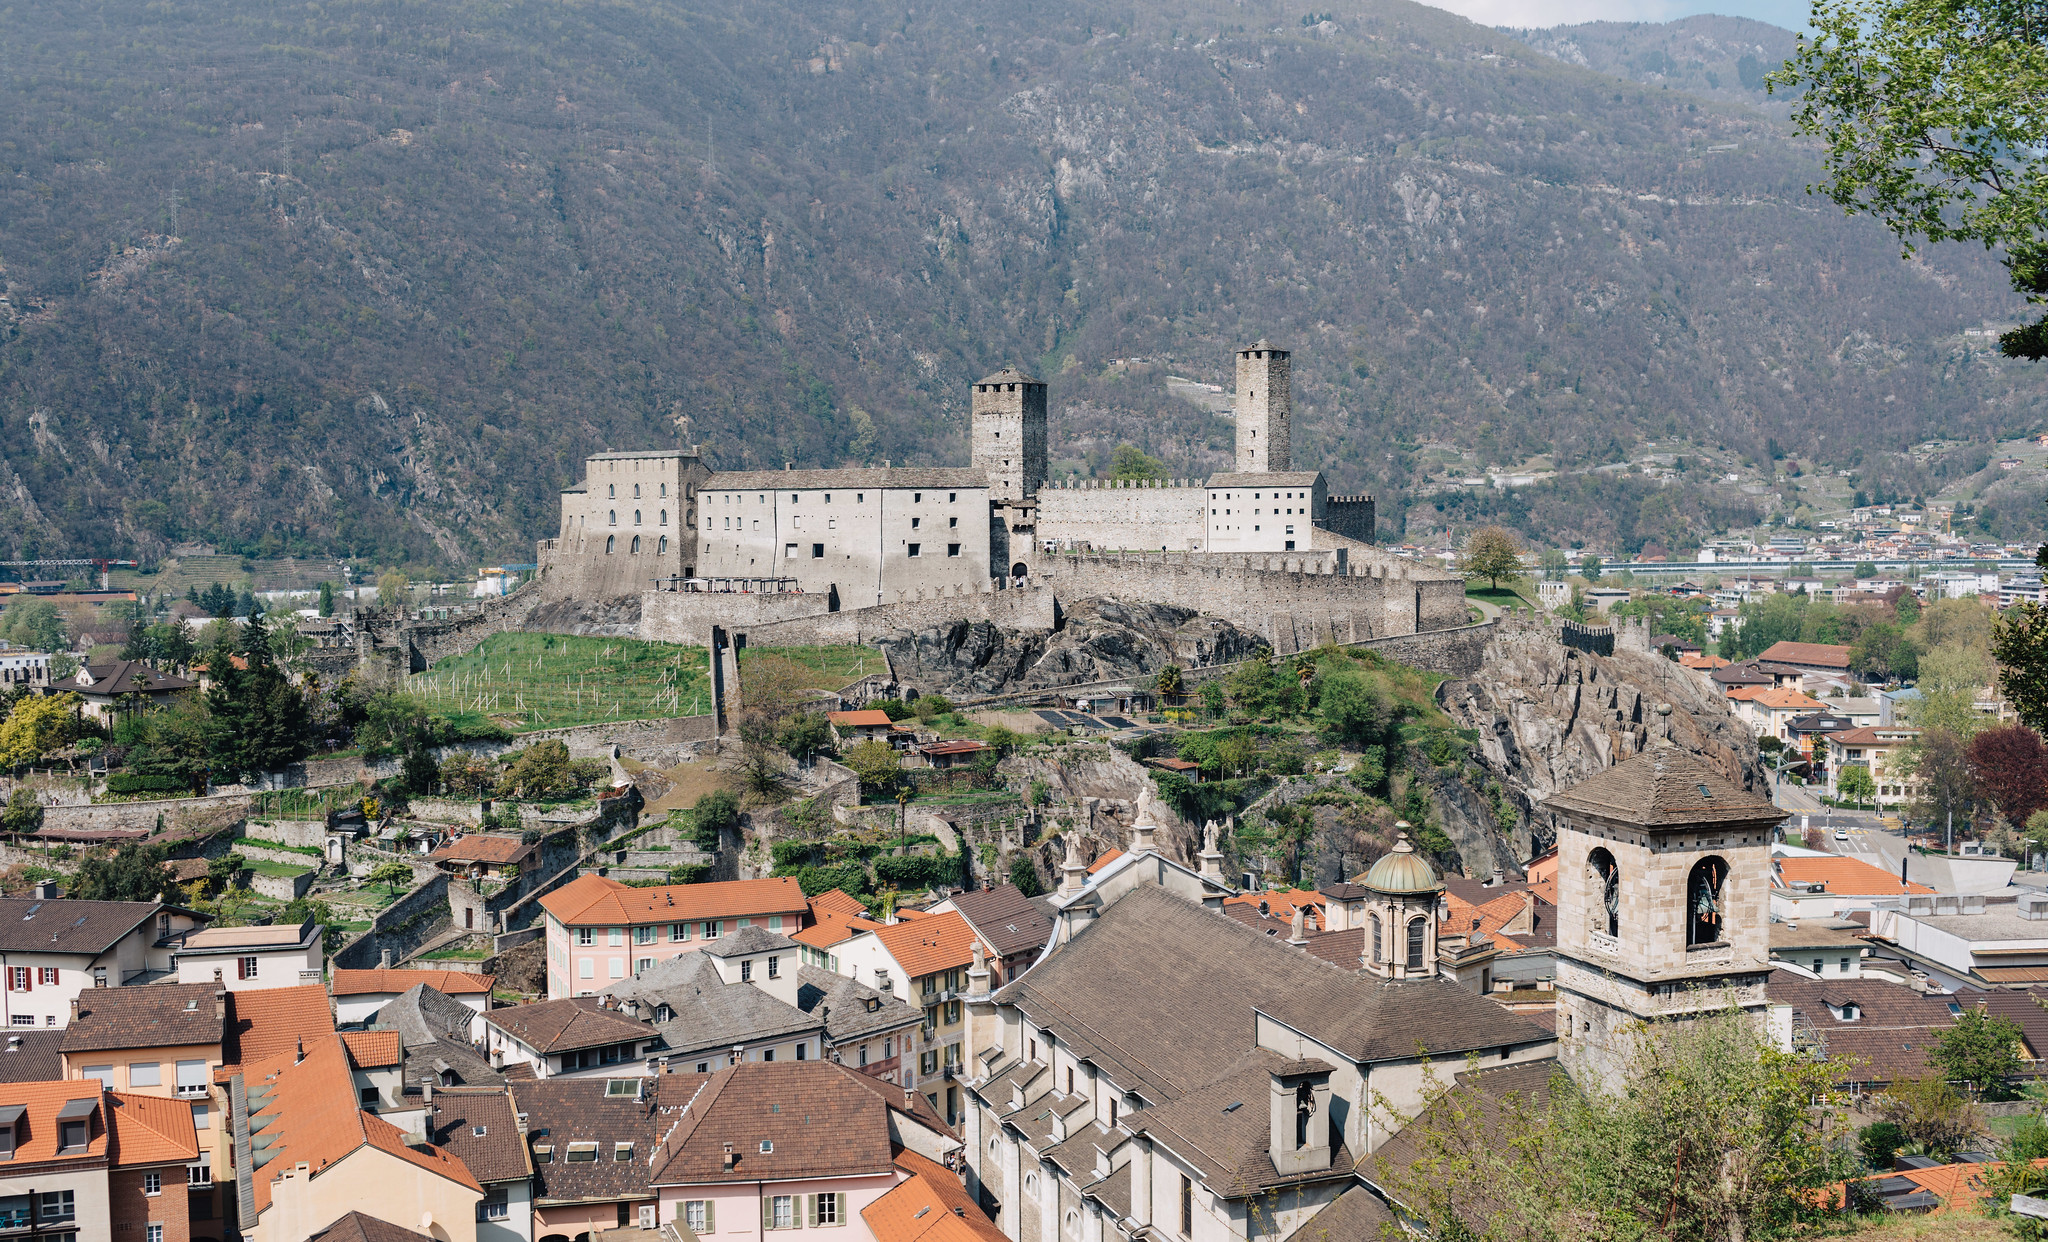 Looking at Castelgrande from Montebello Castle